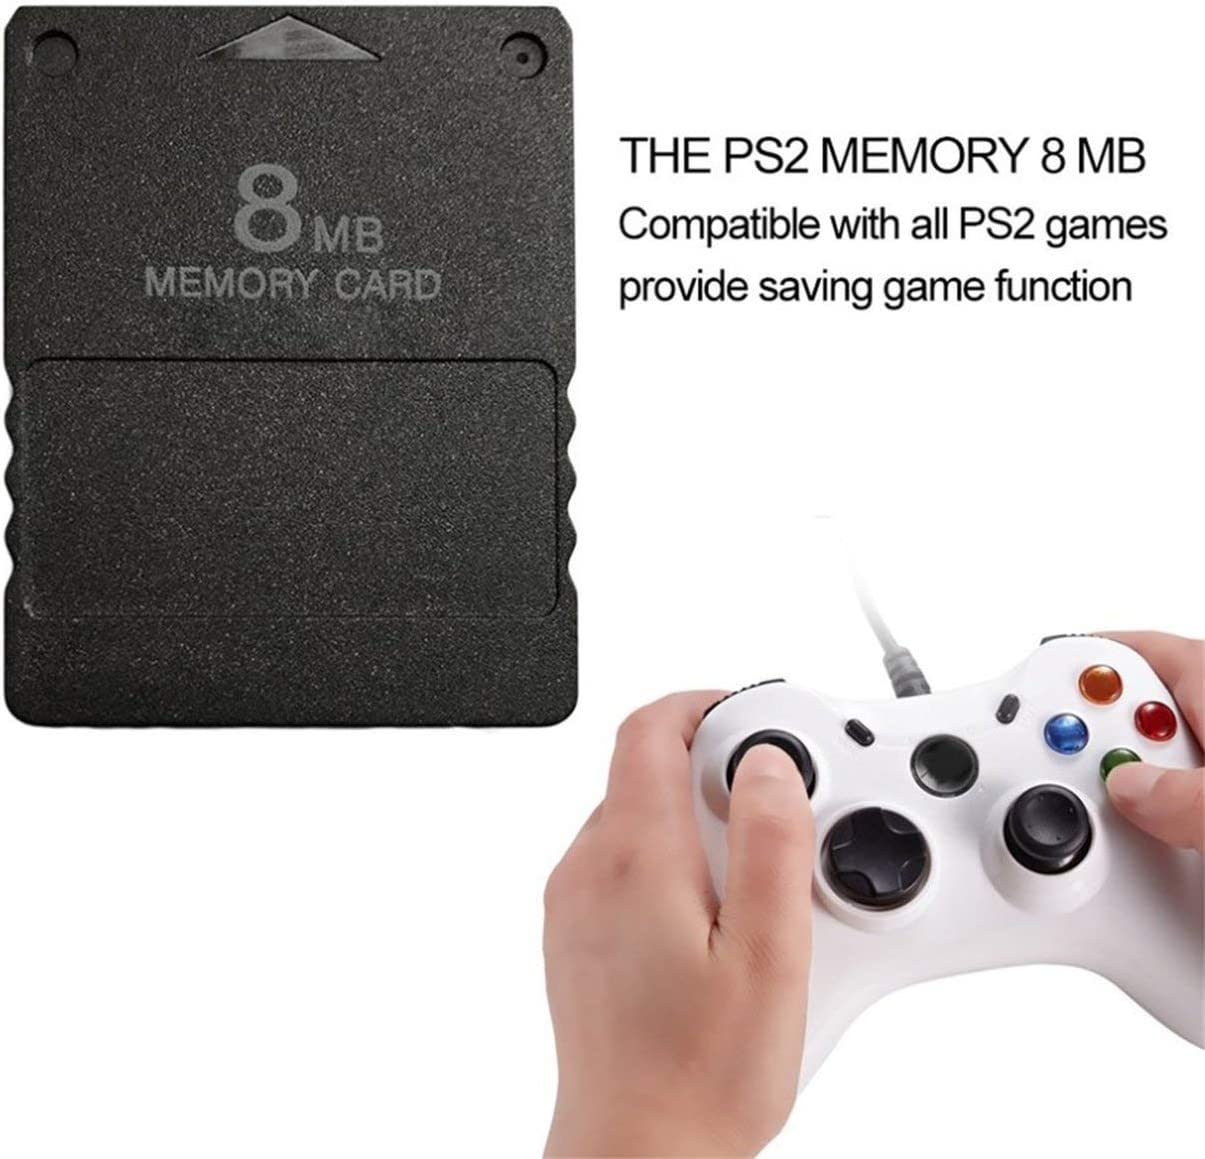 Jullynice Compact Design Black 8MB Memory Card Memory Expansion Card Suitable for Playstation 2 PS2 Black 8MB Memory Card